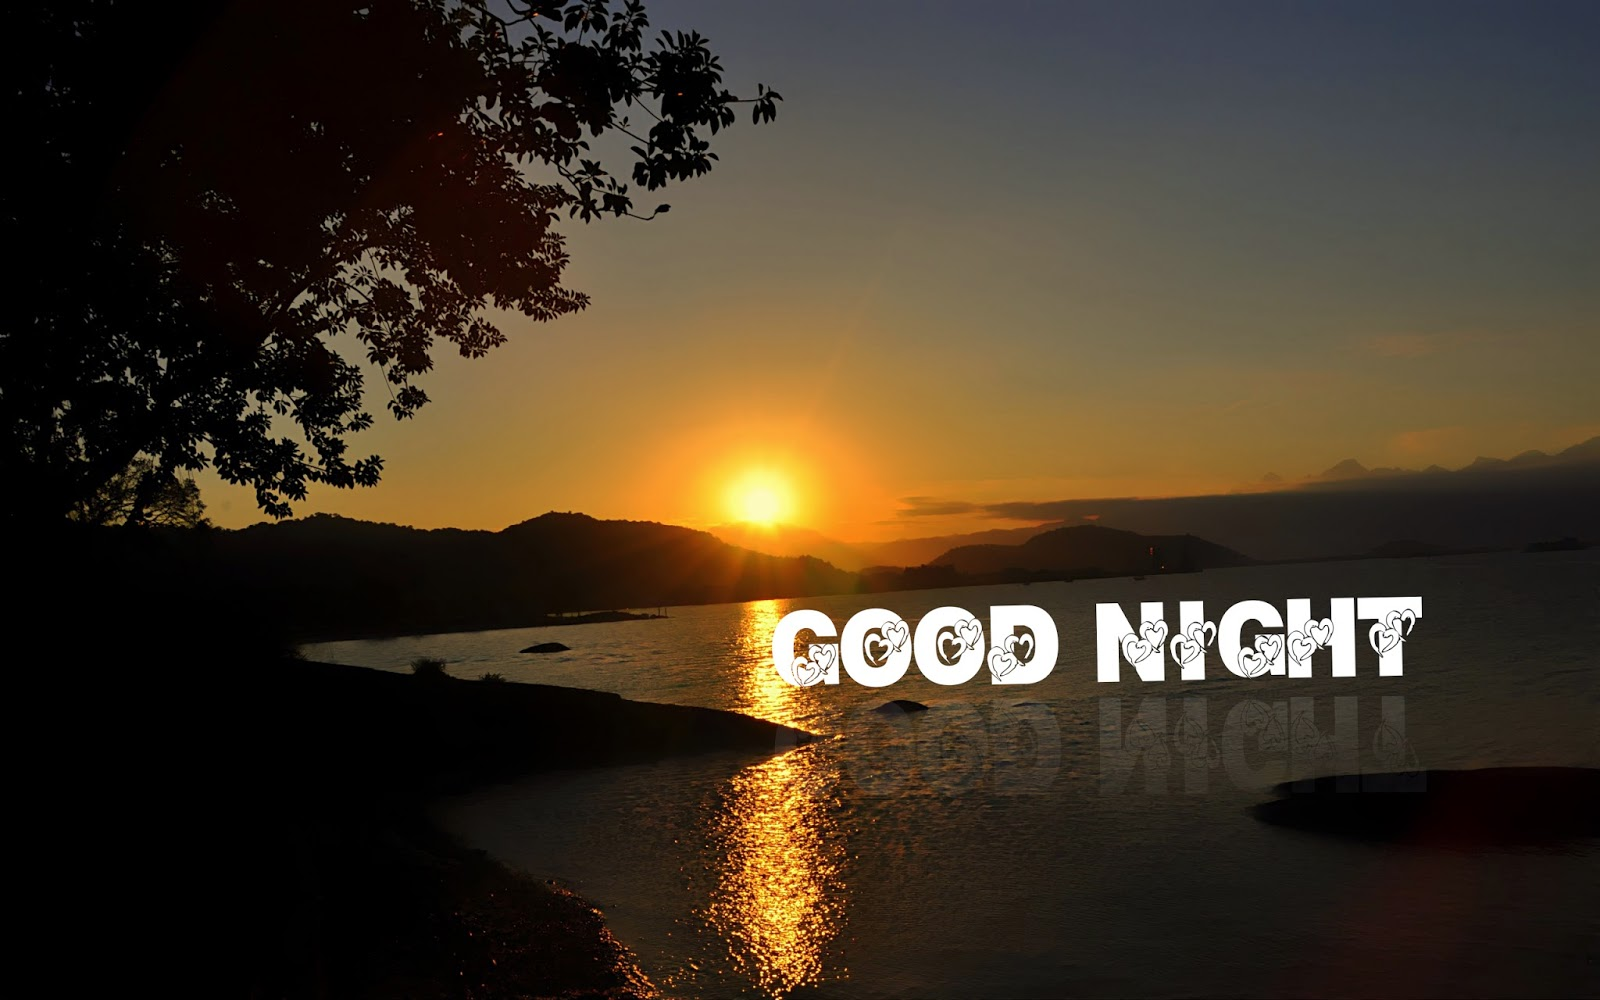 Good Night Images, Ecards, Greetings and Pictures Wishes Rainy good night pictures